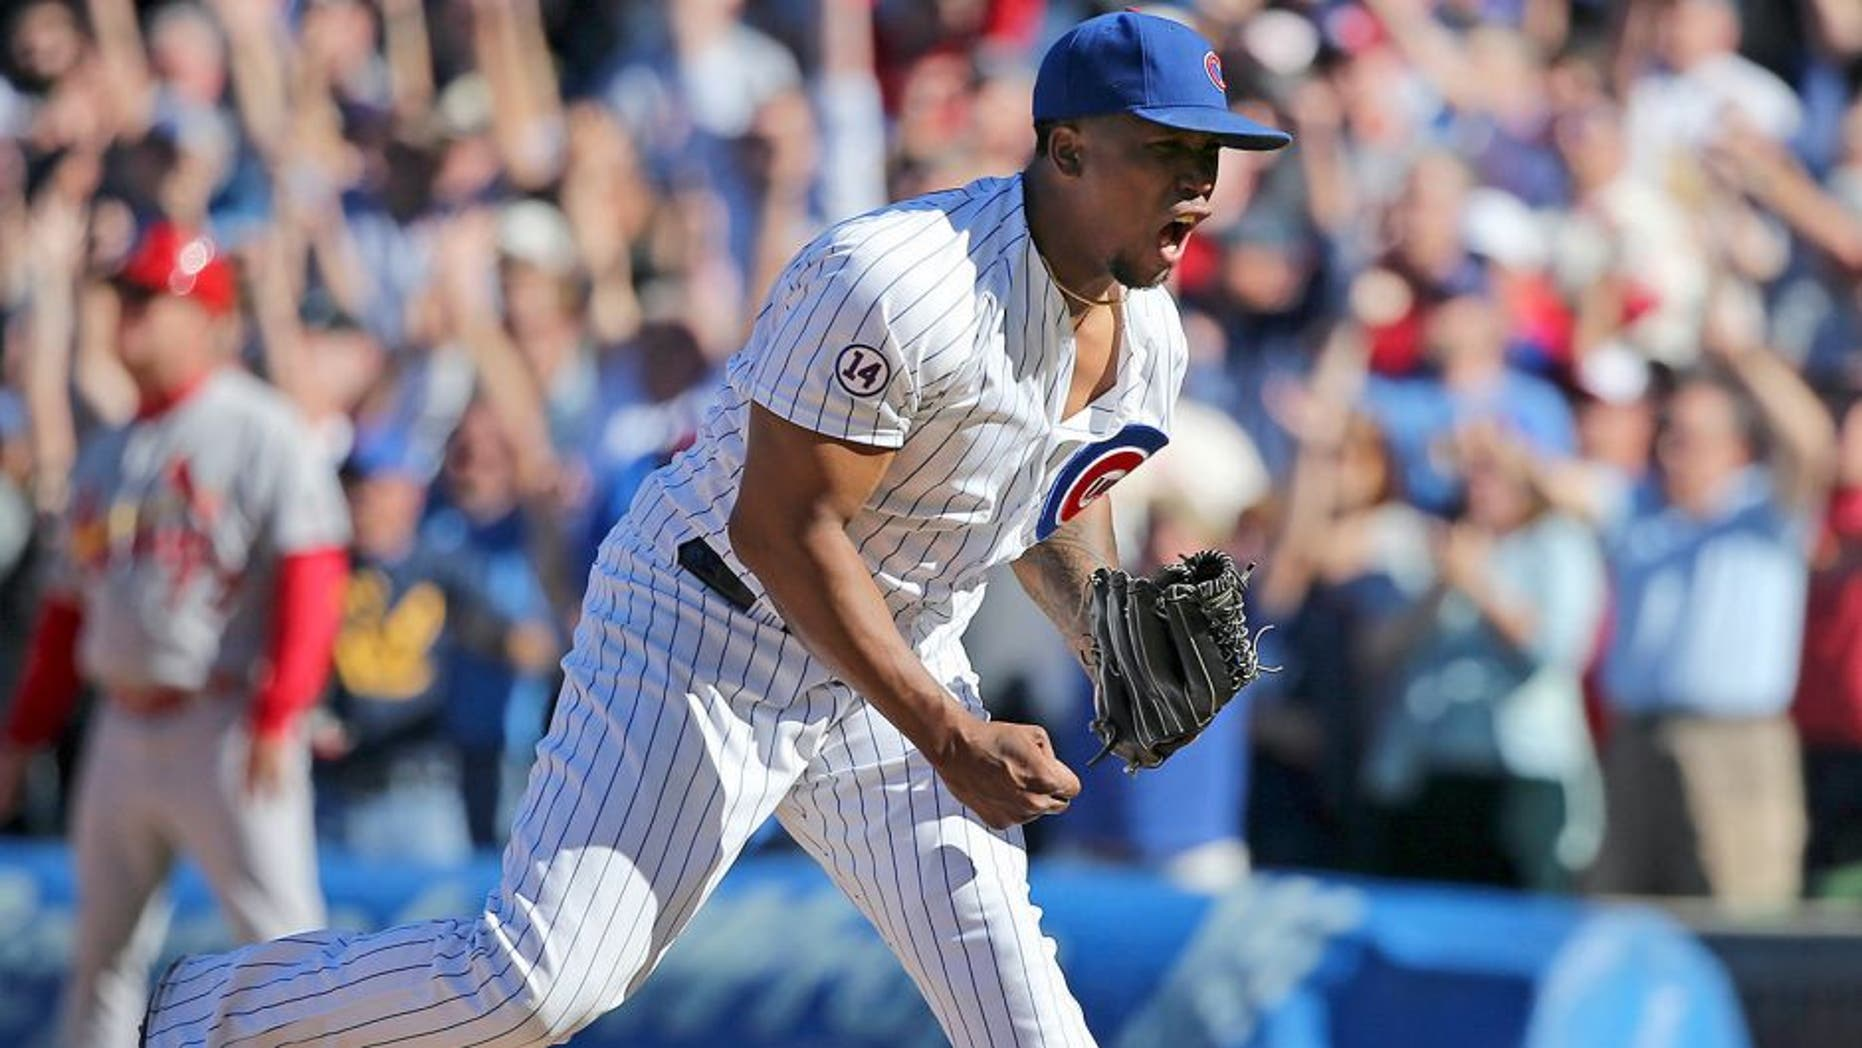 Chicago Cubs pitcher Pedro Strop celebrates after the last out during the ninth inning in a 5-4 win against the St. Louis Cardinals at Wrigley Field, in Chicago on Saturday, Sept. 19, 2015. The Cubs won, 5-4. (Nuccio DiNuzzo/Chicago Tribune/TNS via Getty Images)